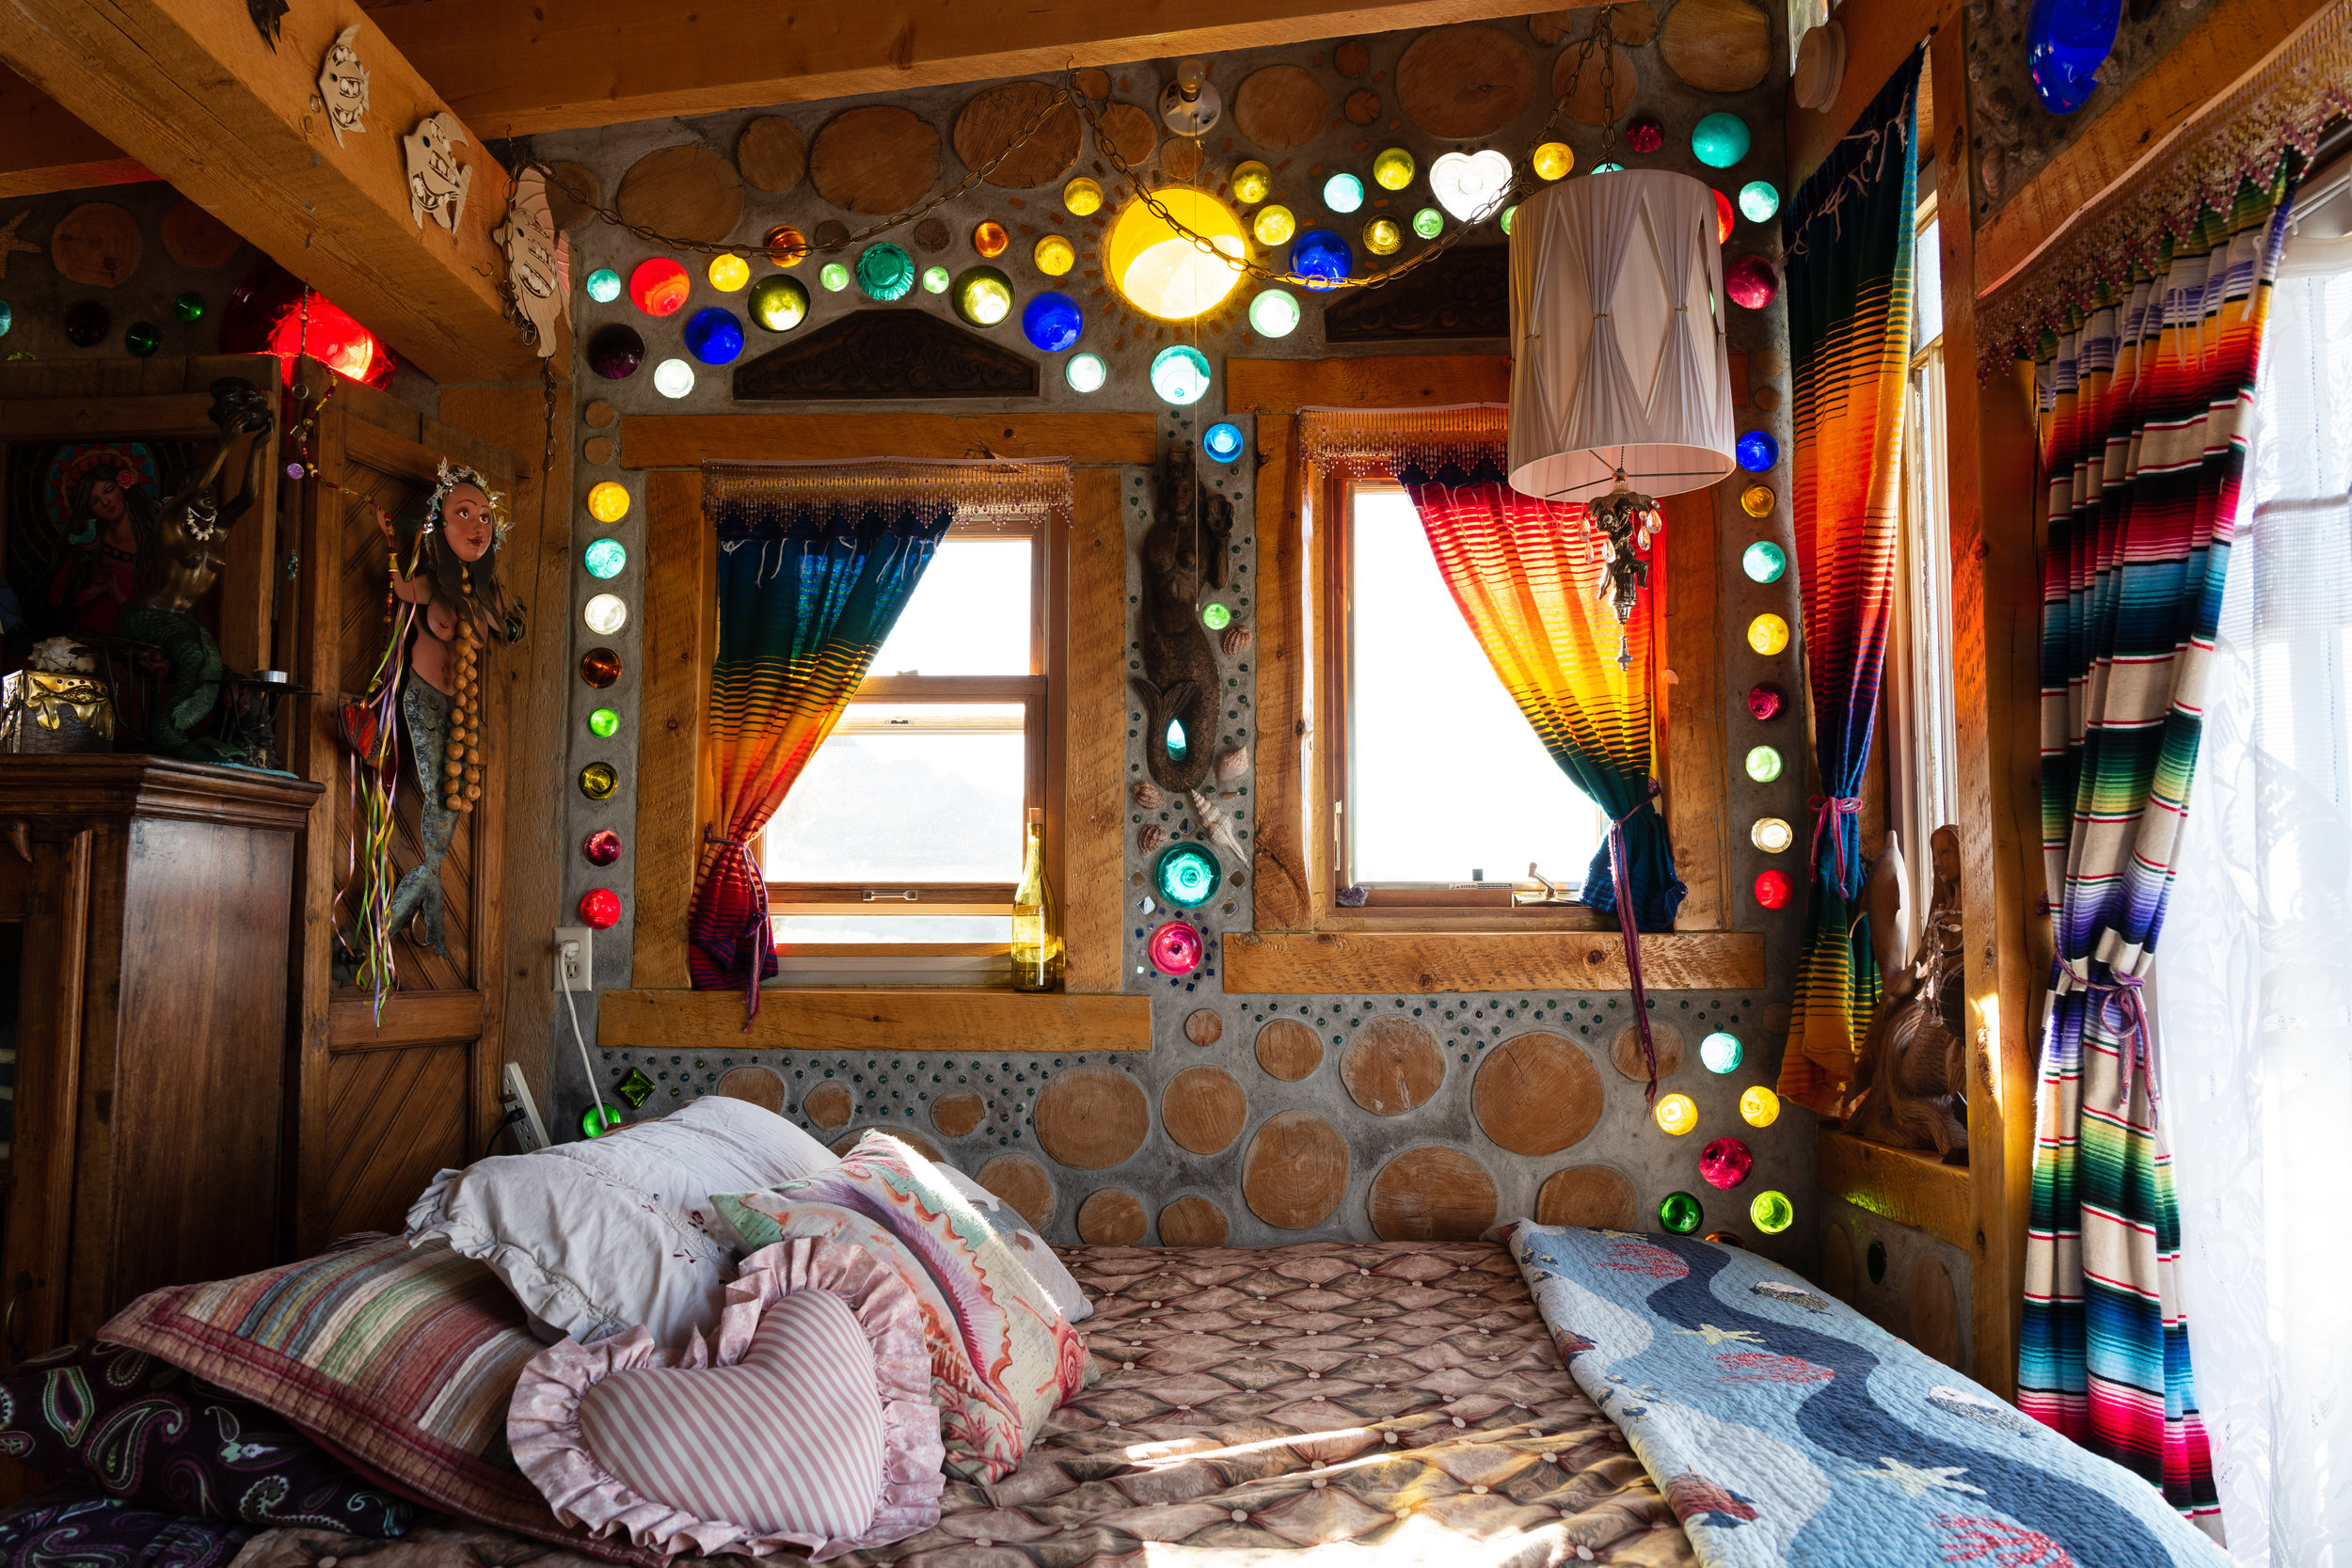 THE MERMAID COTTAGE - On an off-grid ranch on the western edge of the San Luis Valley in Colorado, a cordwood casita known as the Mermaid Cottage inspires sustainable living. And it only cost $5,000 to build.